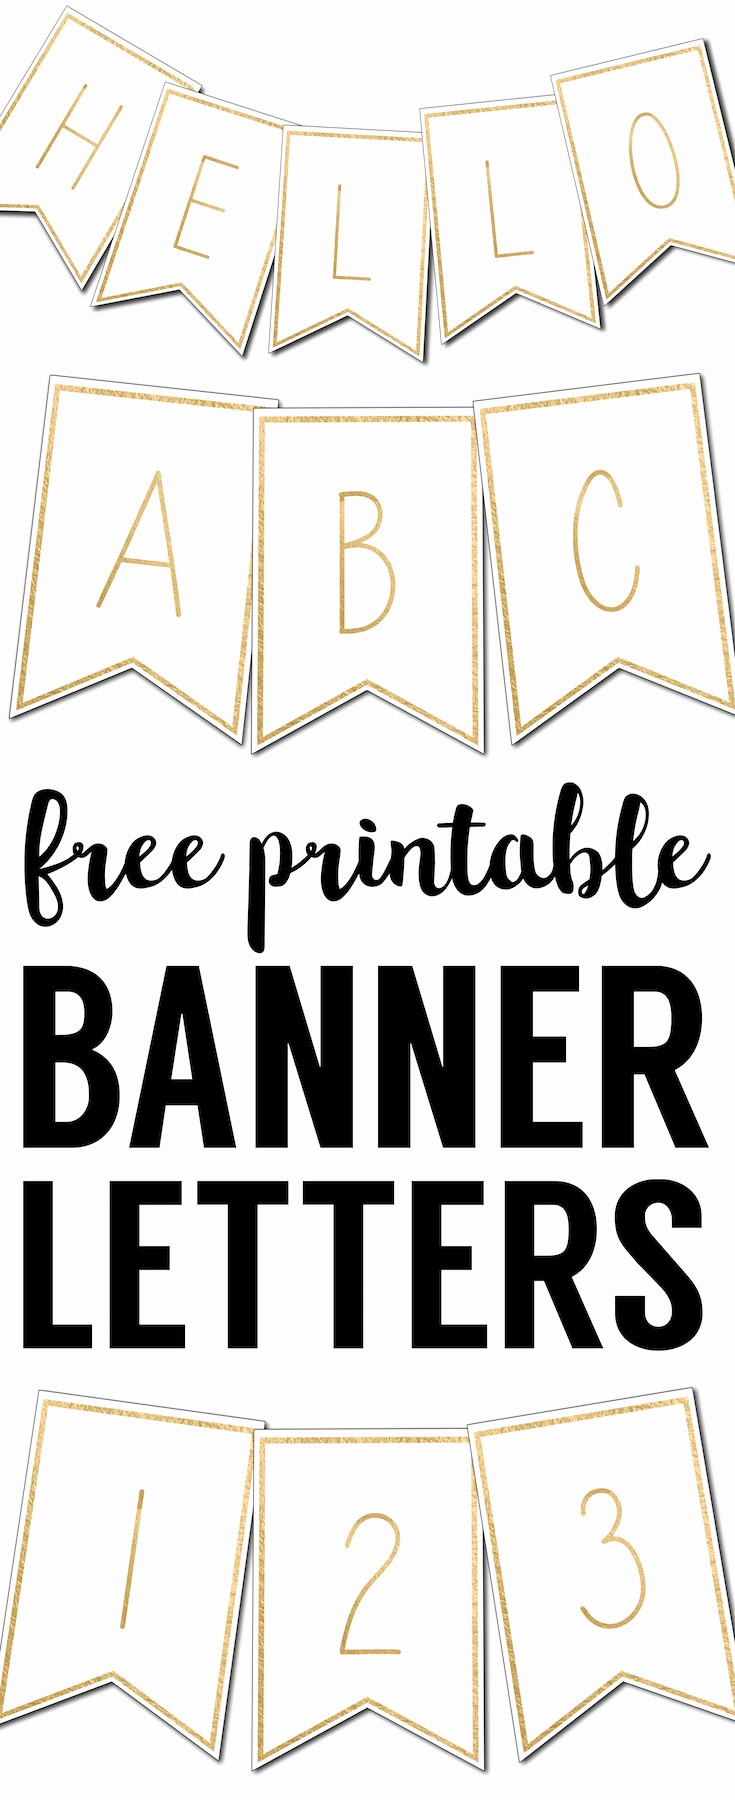 How to Make Banner Letters Beautiful Free Printable Banner Letters Templates Paper Trail Design